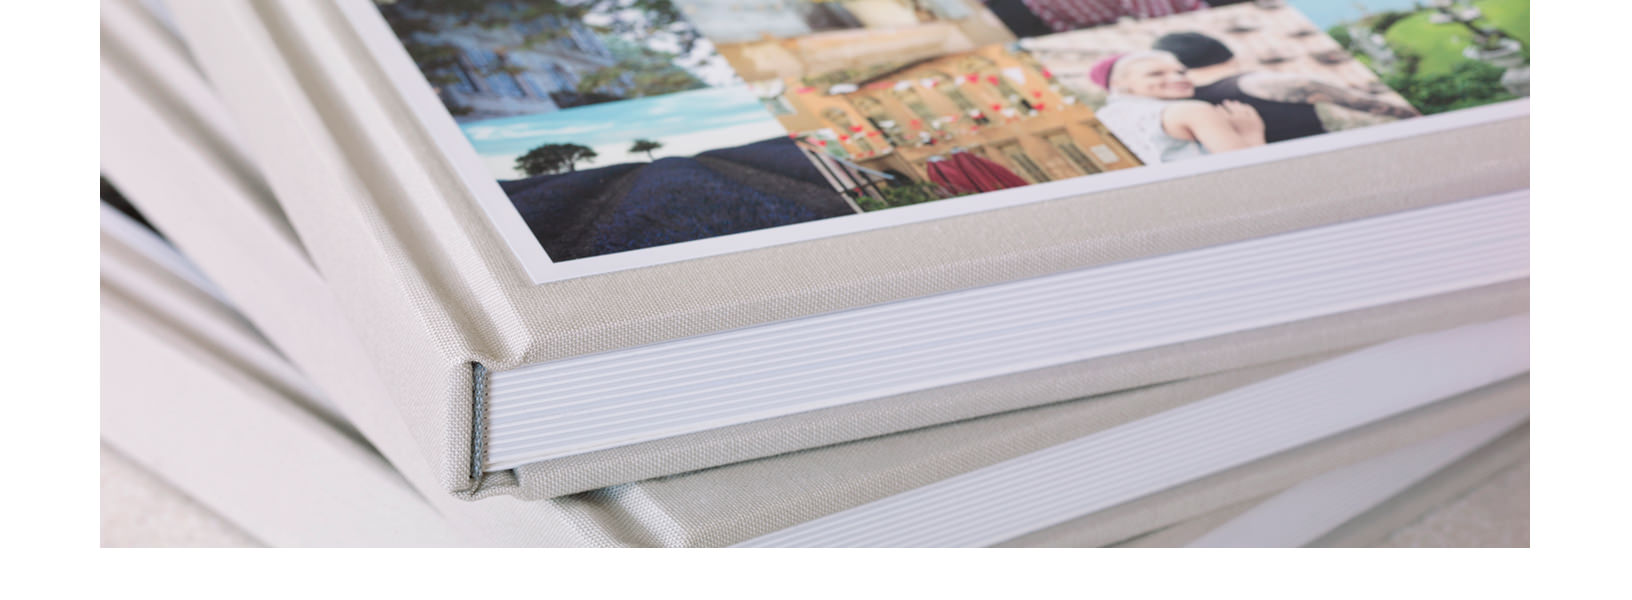 MILK PHOTO BOOKS – BOARD